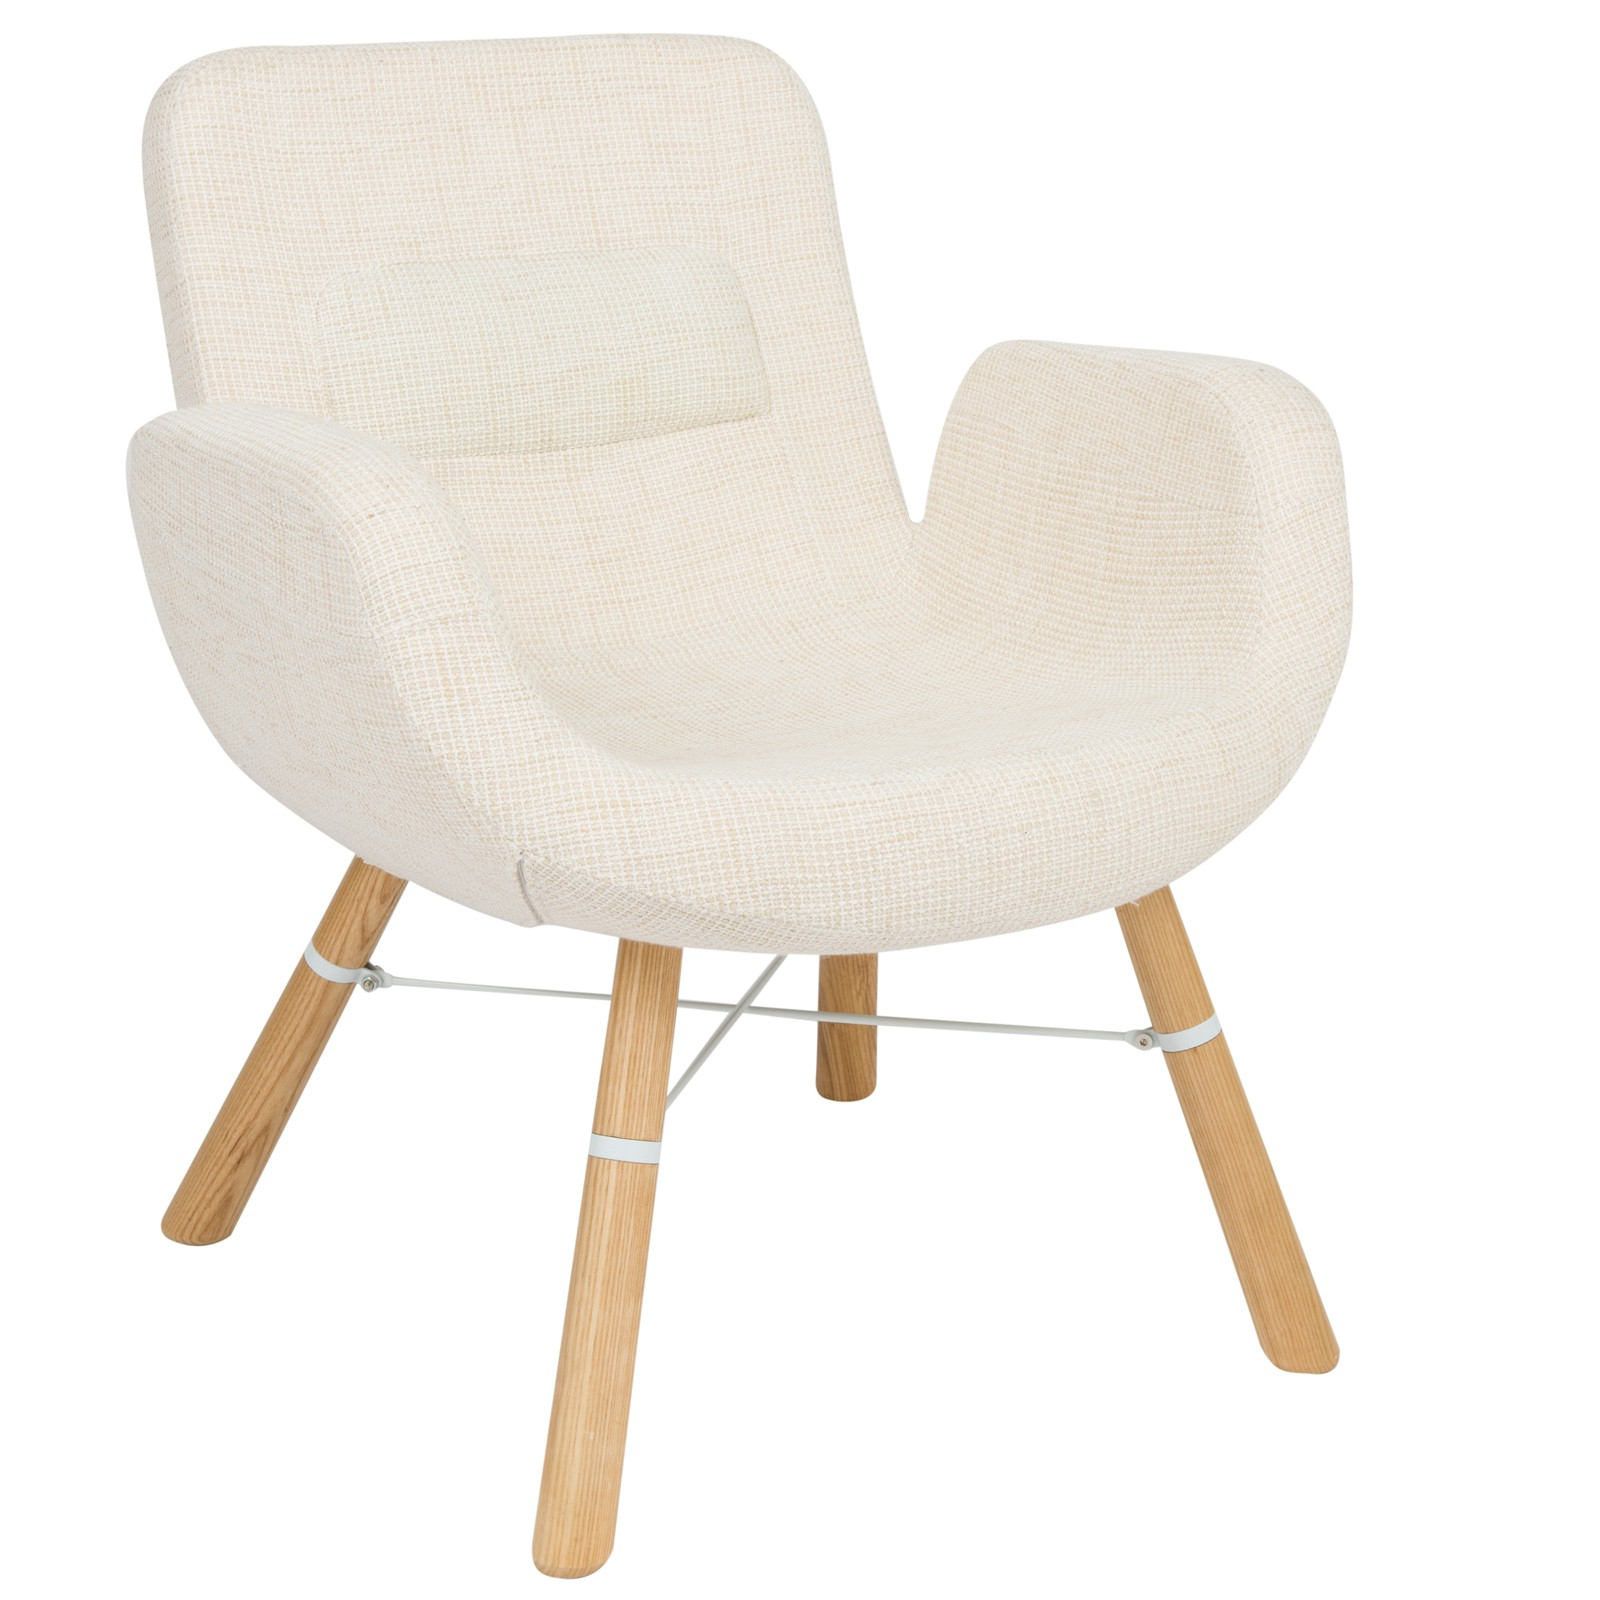 Milwood Accent Chair W/ Dowel Legs In Beige – Chairs With Regard To Twill Fabric Beige Rocking Chairs With Eiffel Legs (#12 of 20)